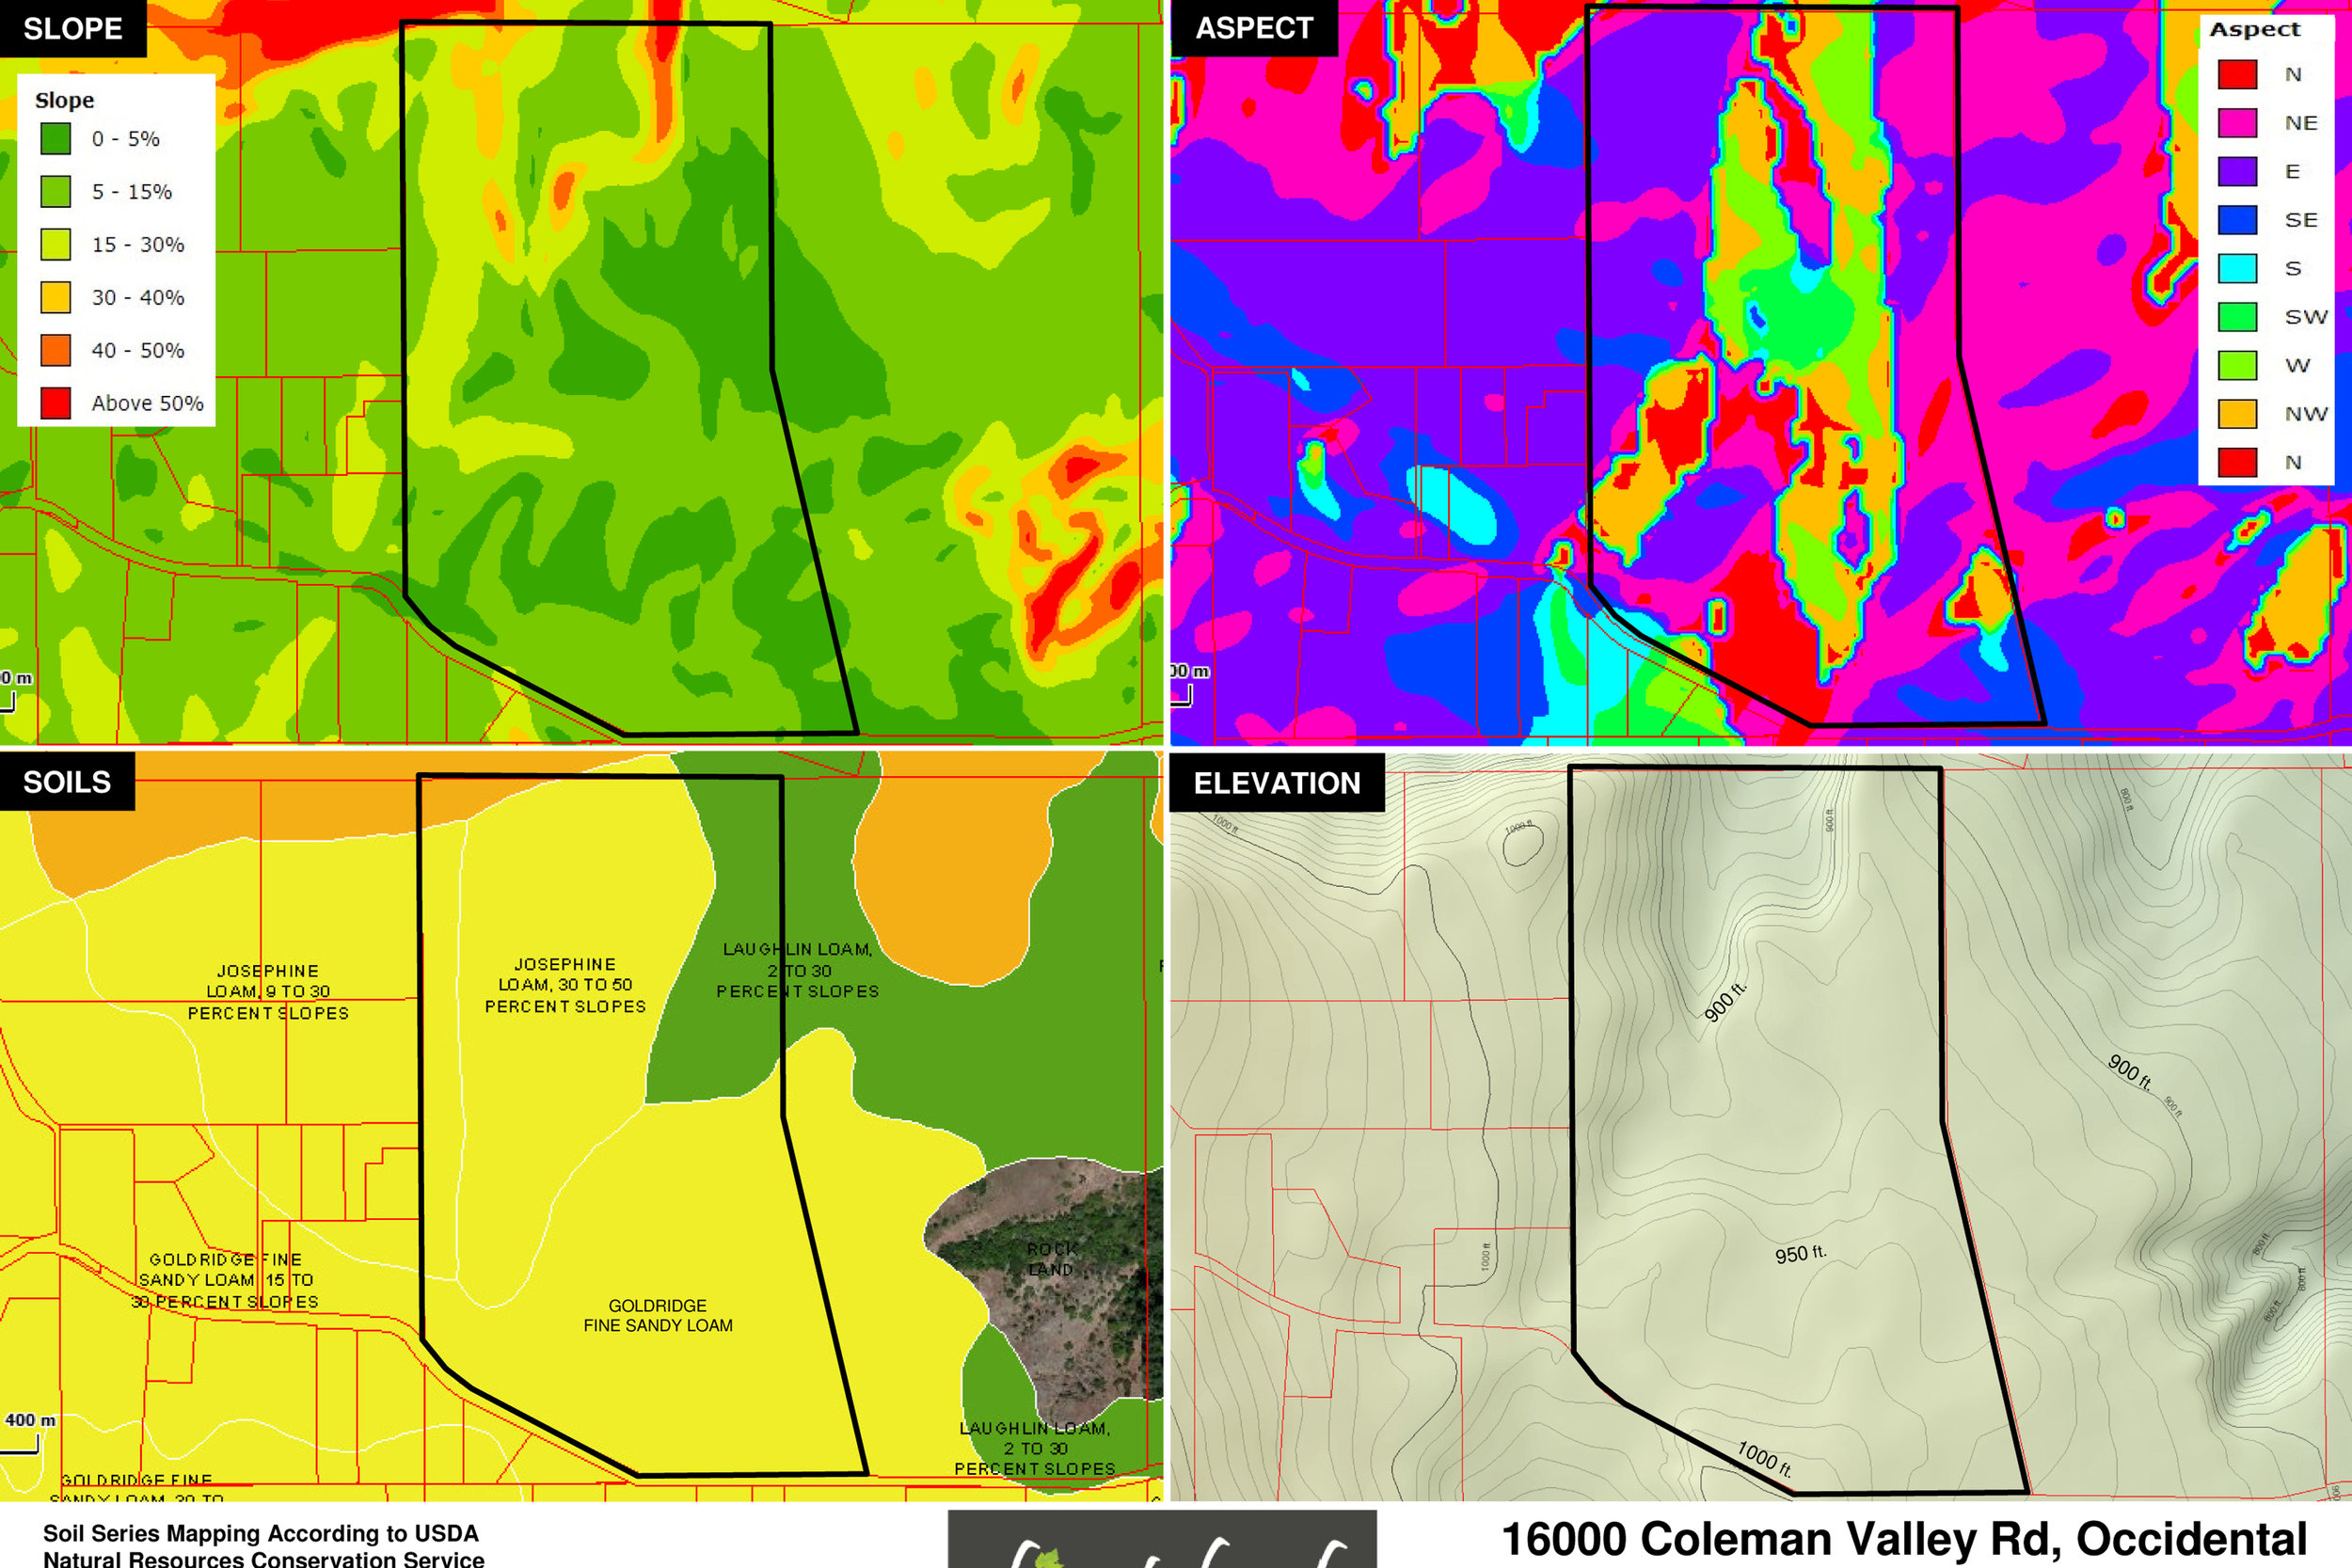 16000 Coleman Vly Rd Mapping.jpg